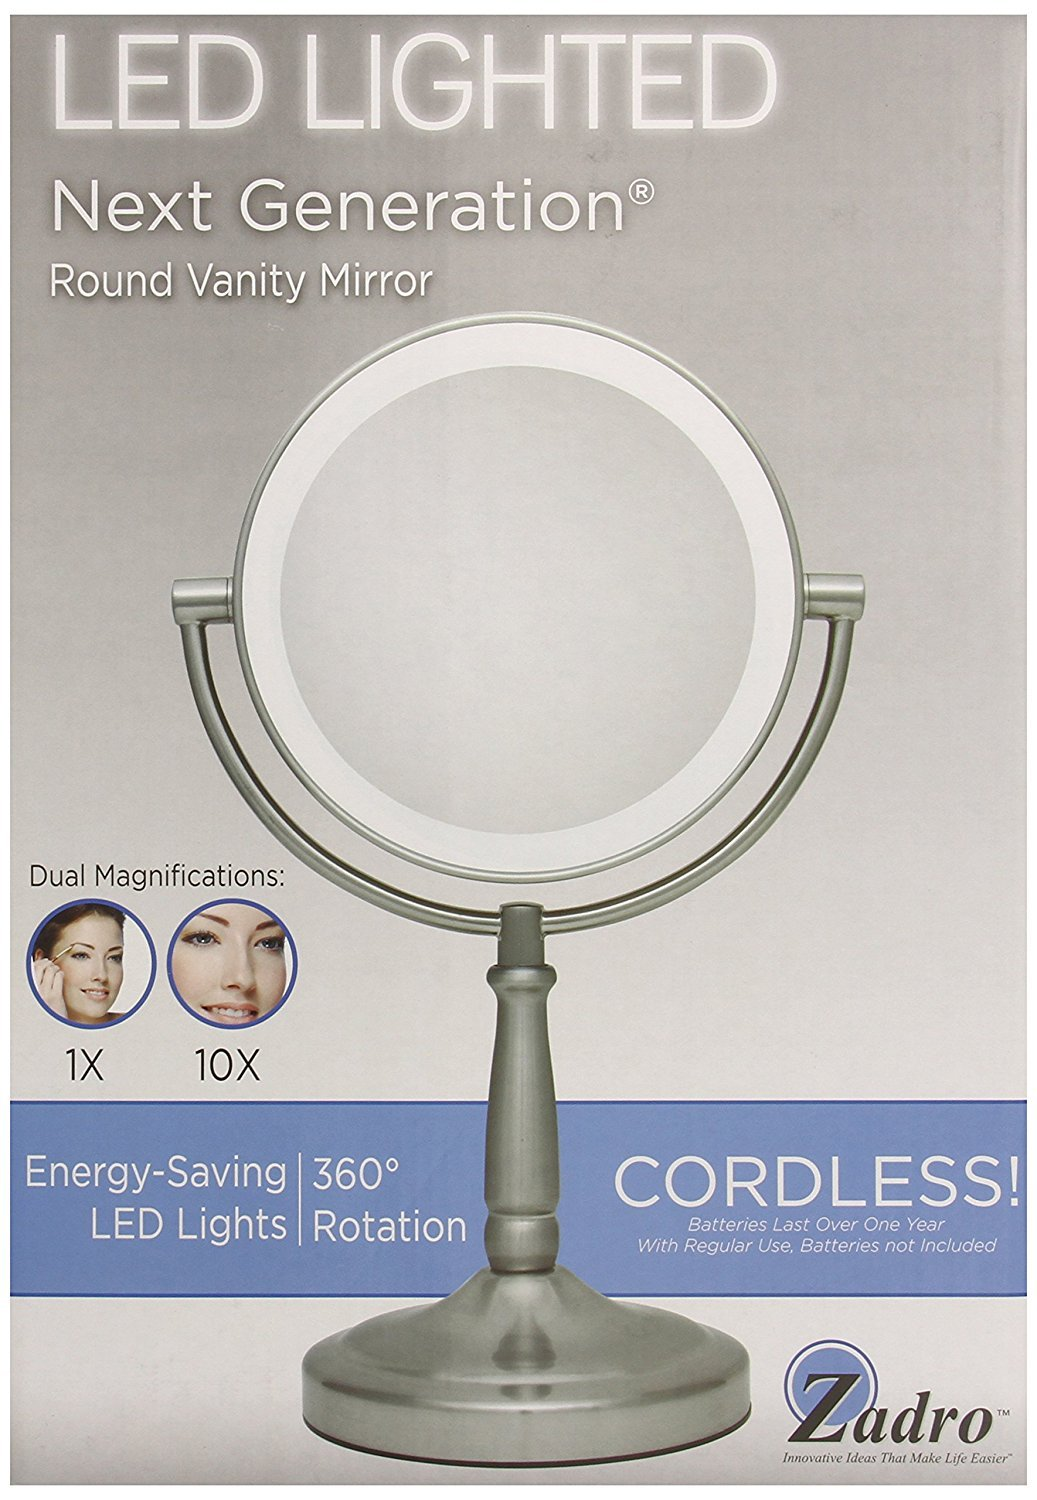 Amazon zadro 10x1x magnification dual sided vanity mirror amazon zadro 10x1x magnification dual sided vanity mirror satin nickel personal makeup mirrors beauty aloadofball Image collections